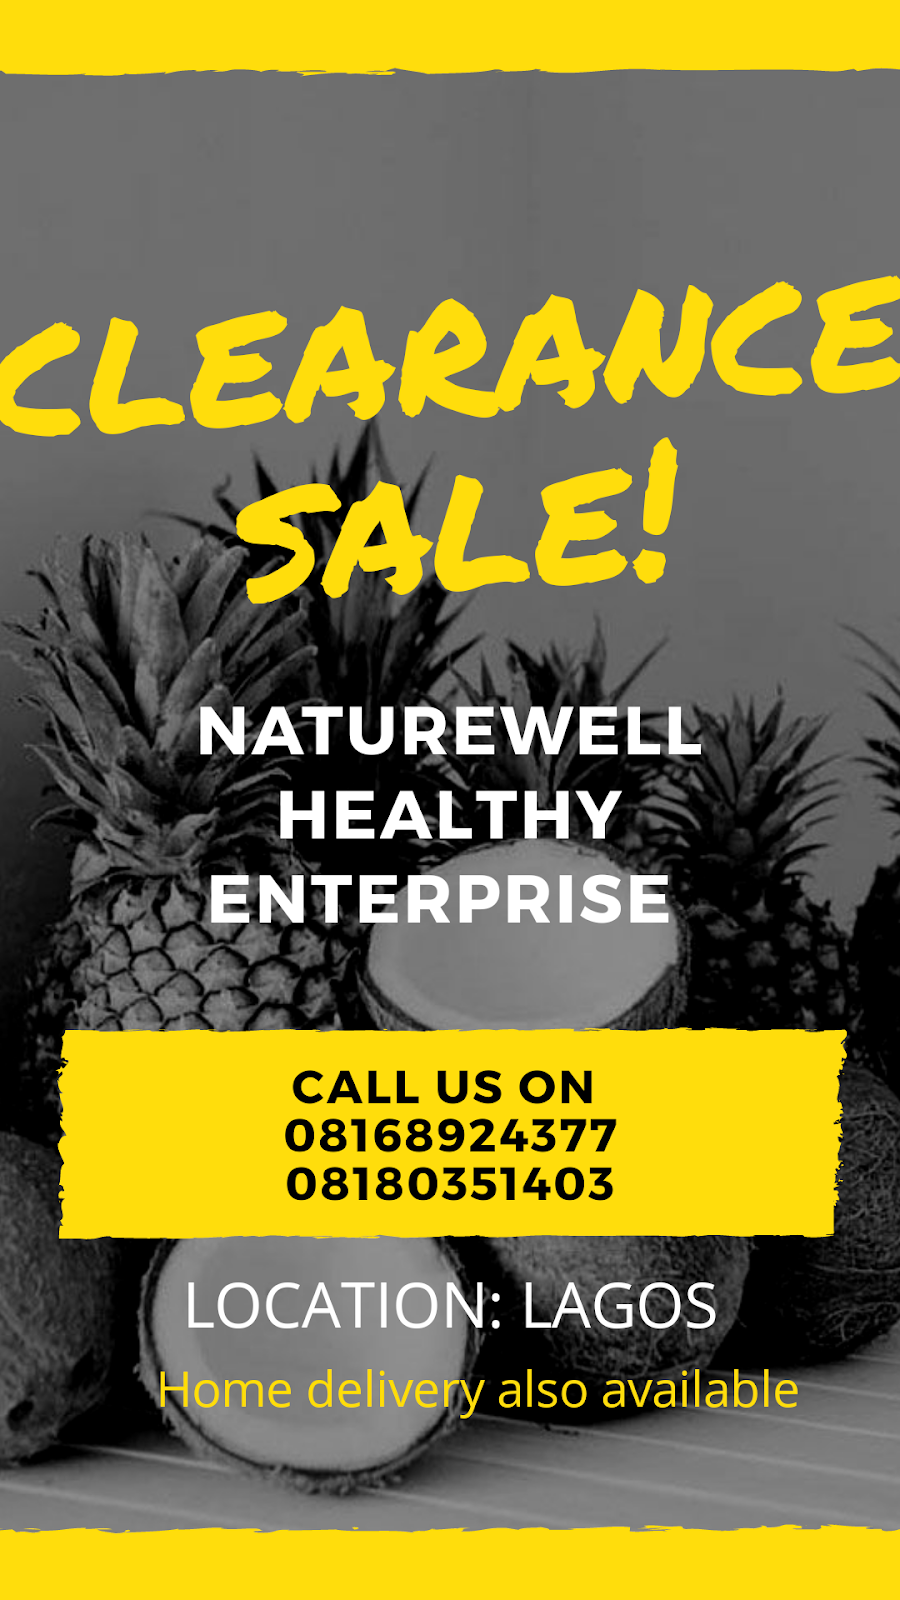 NATUREWELL Enterprise